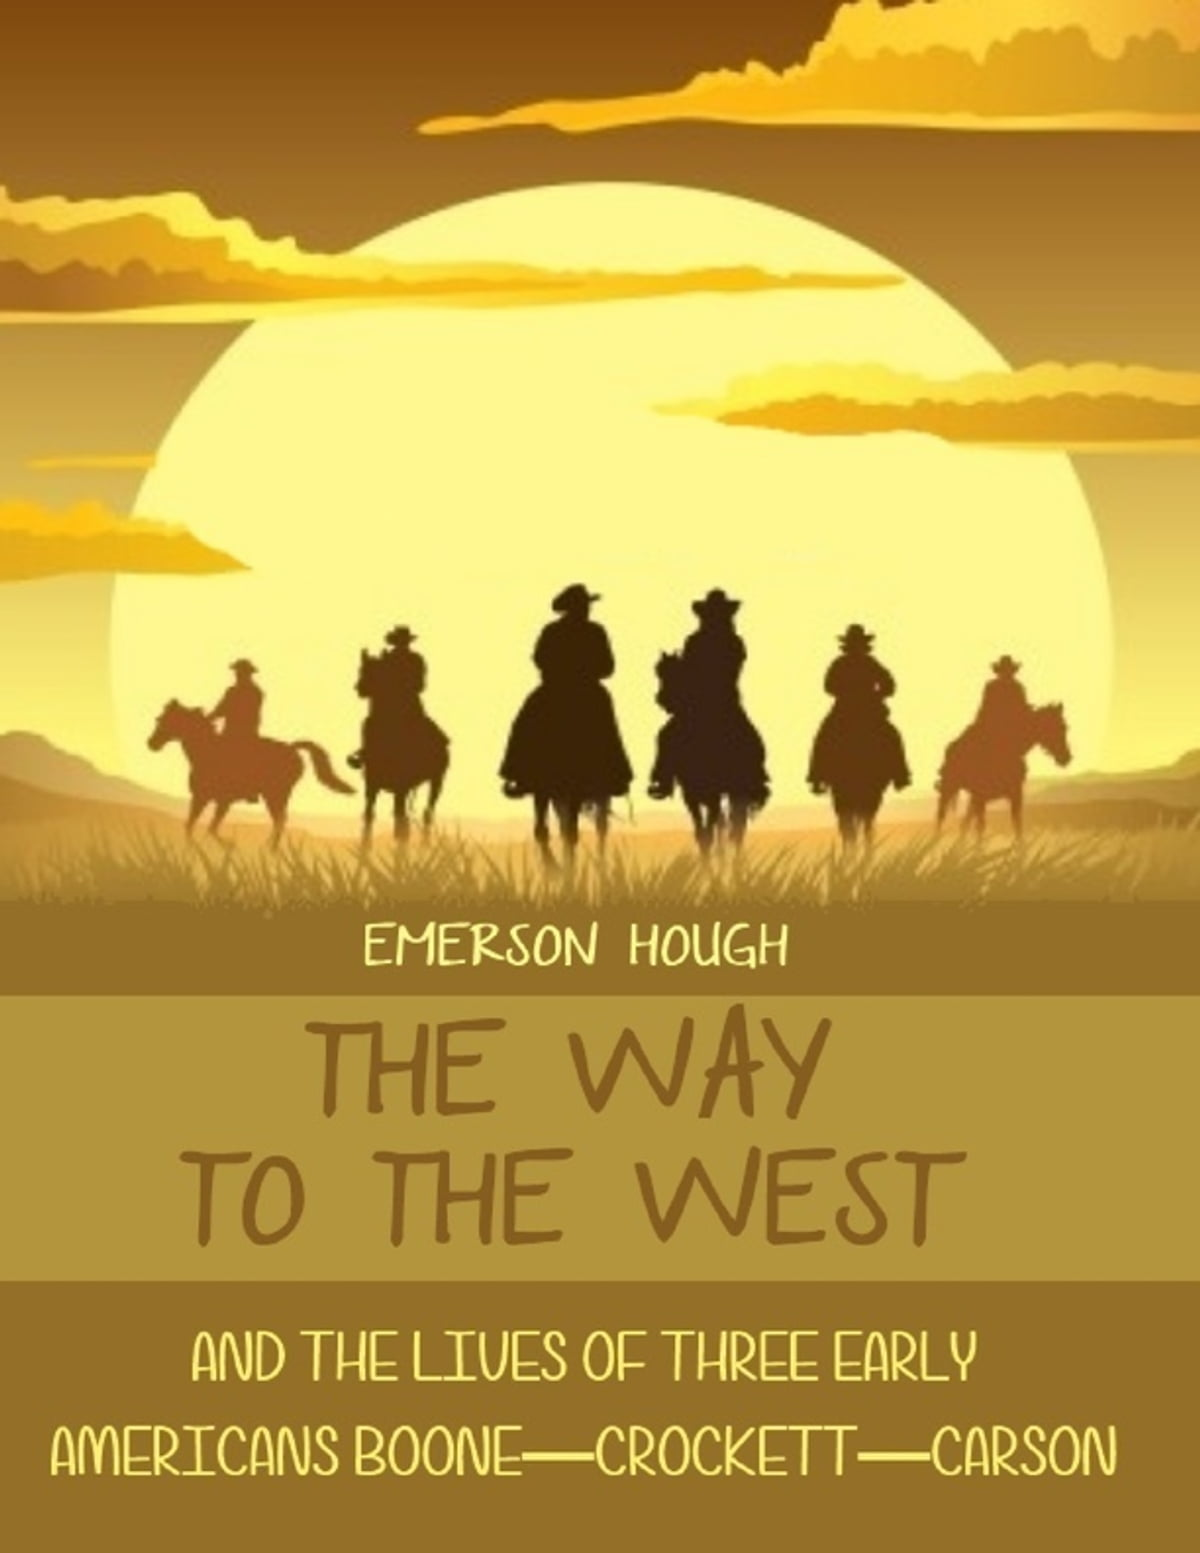 The Way To The West : And The Lives Of Three Early Americans,  Boonecrockettcarson (illustrated) Ebook By Emerson Hough  9781312082465   Rakuten Kobo